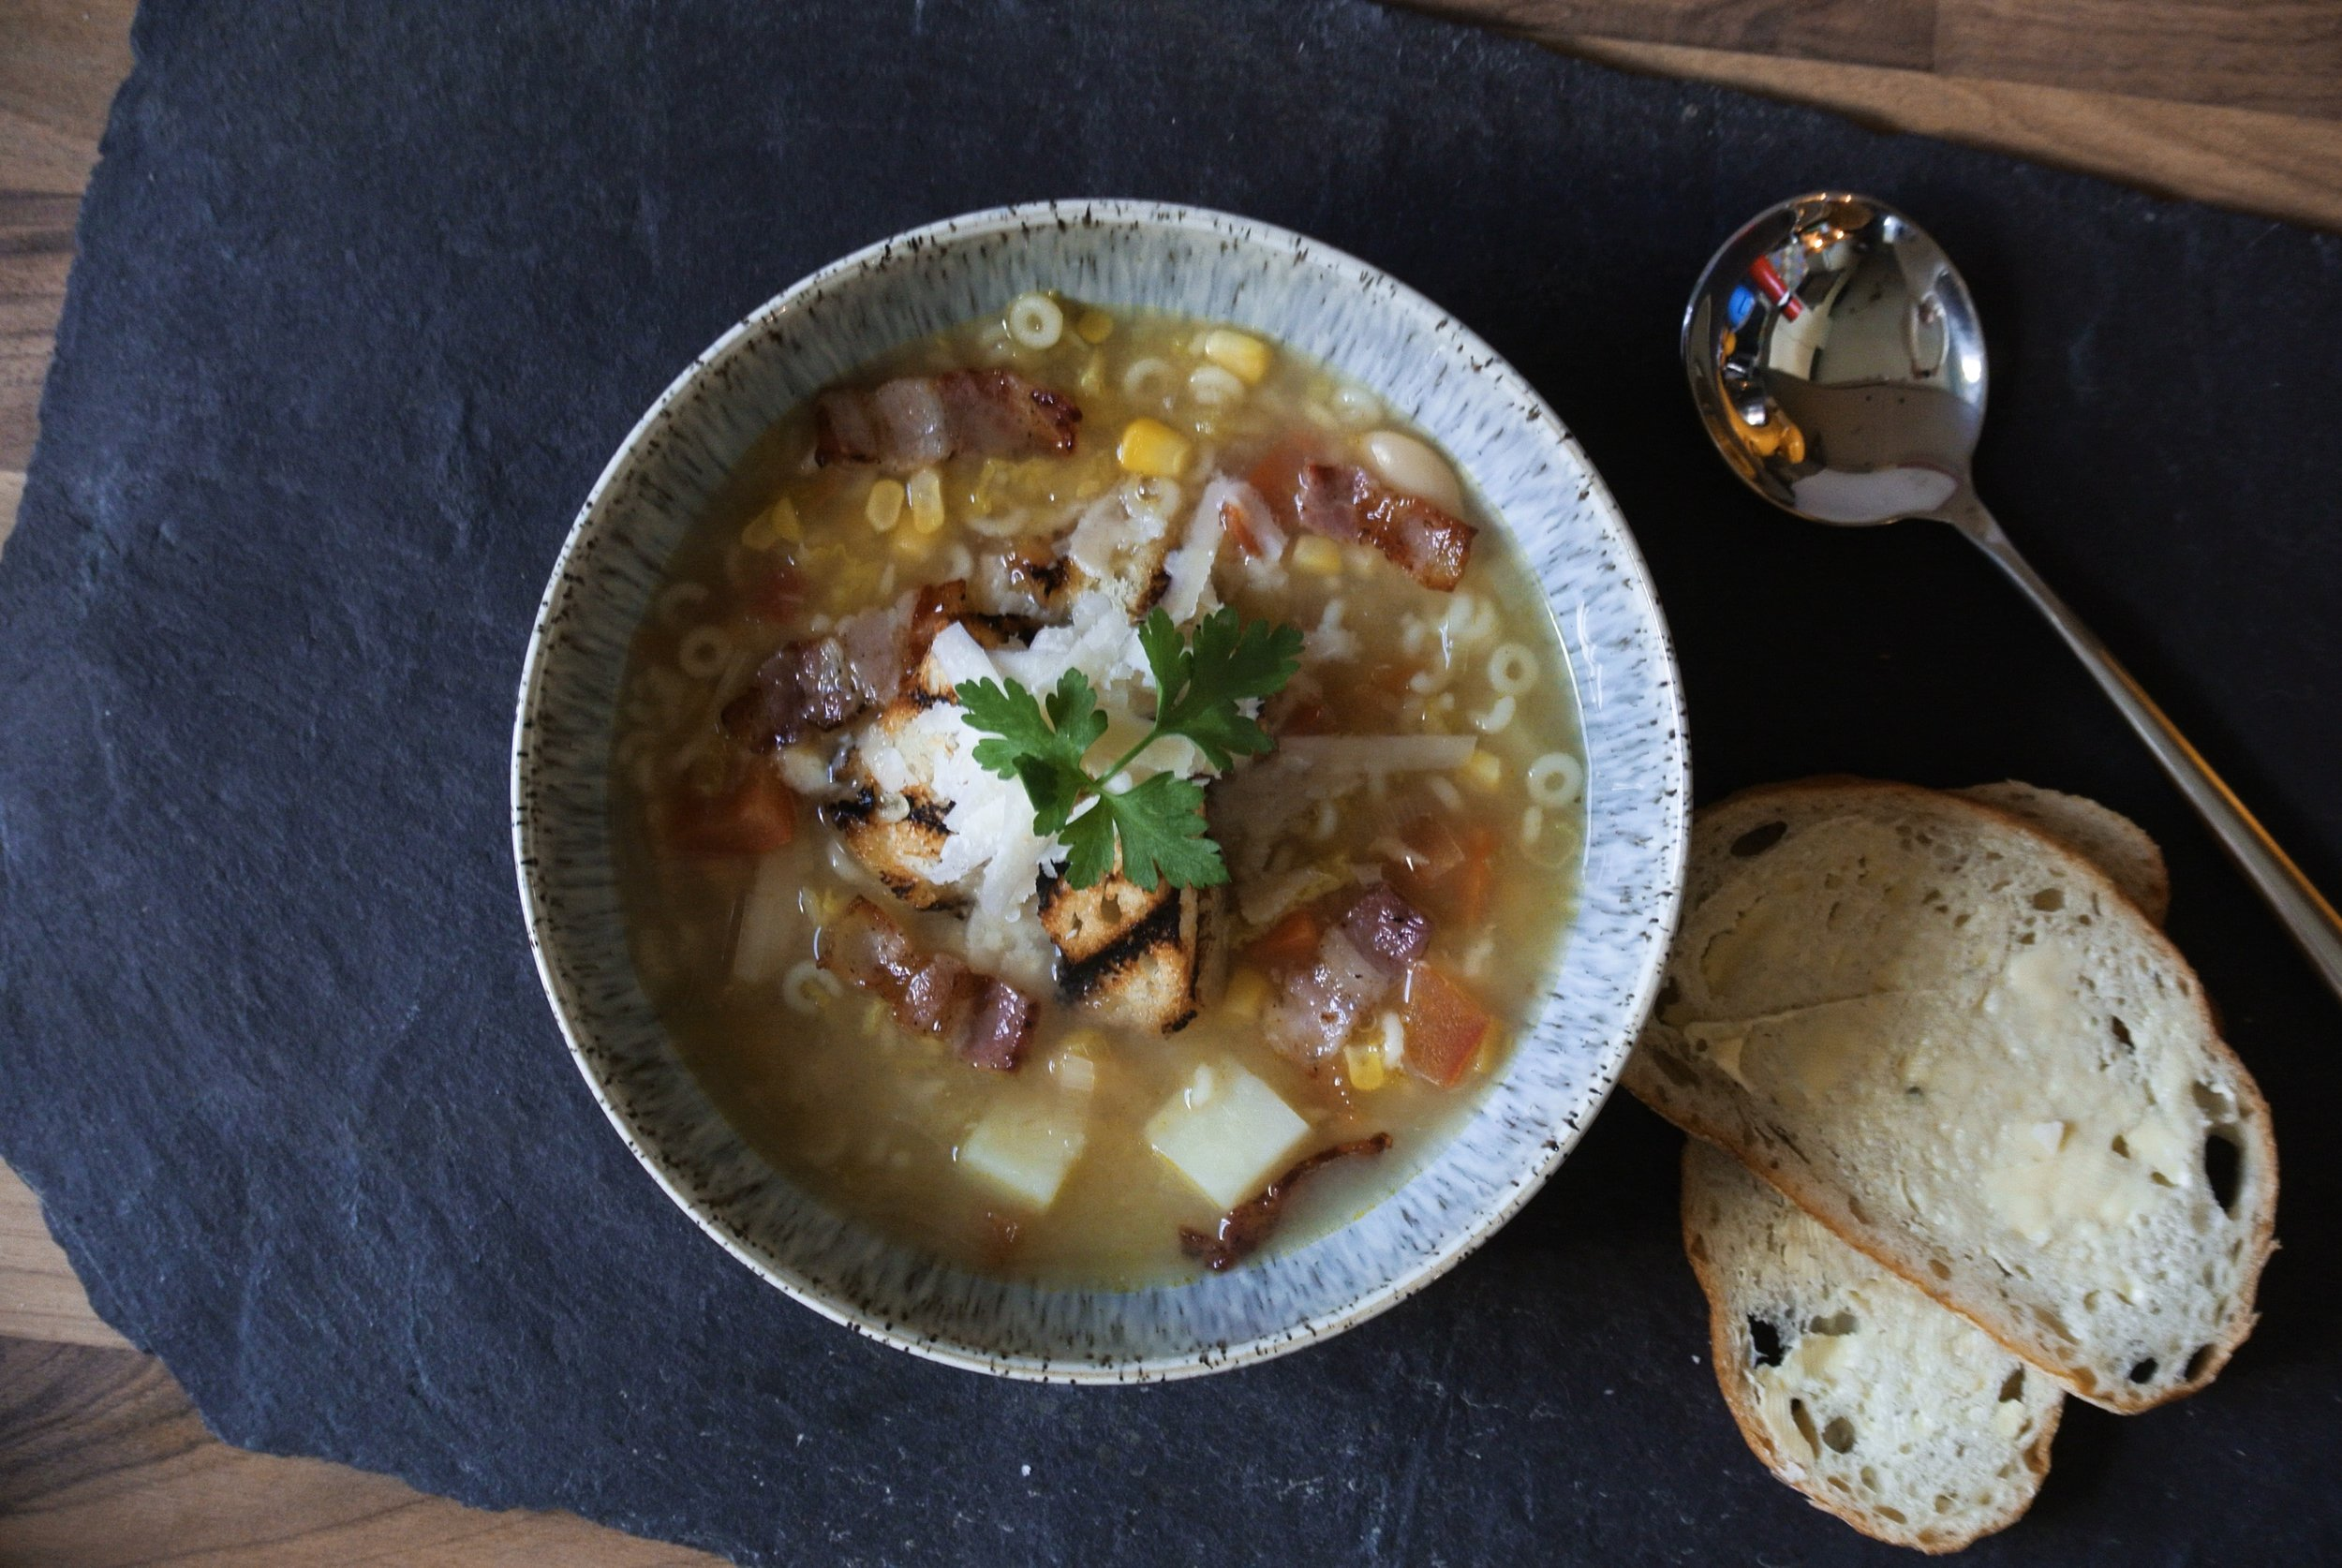 Homemade Minestrone Soup with Croutons and Parmesan